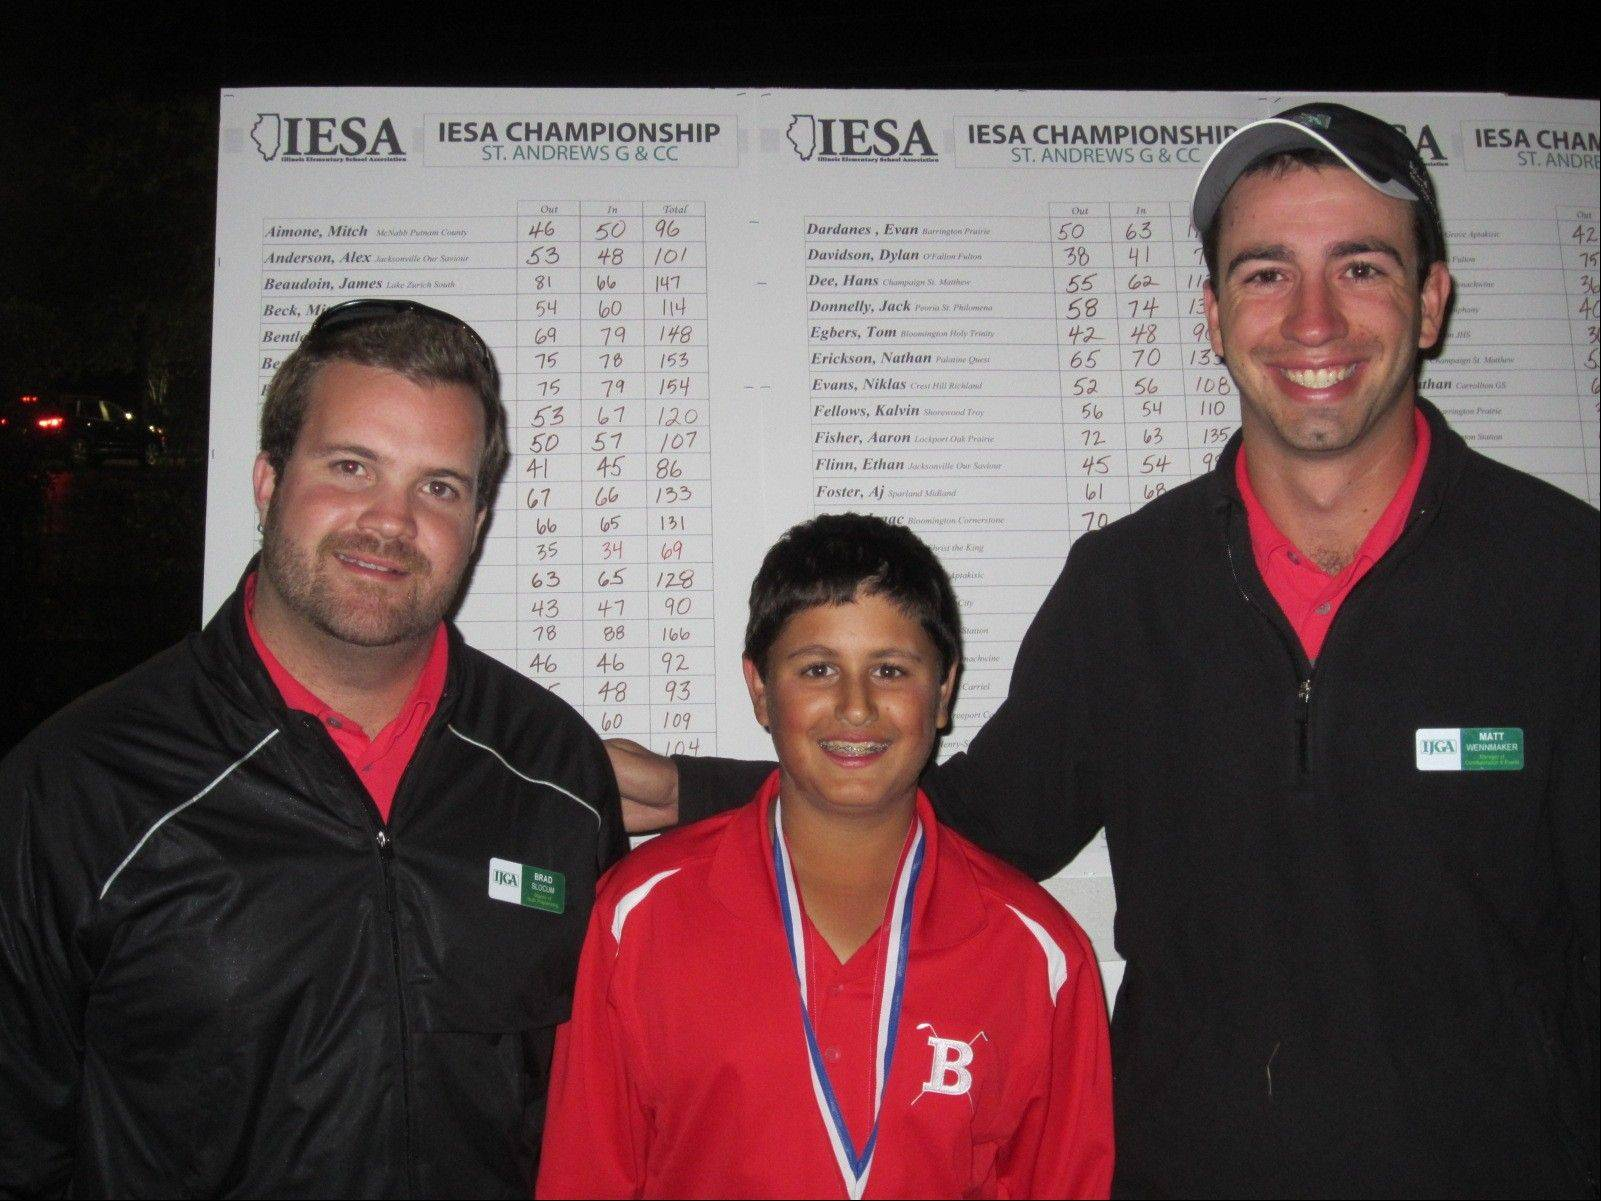 Tom Calbi of Barrington Prairie Middle School won the 2012 Illinois State Elementary School Association state golf championship for the second straight year on Saturday. Here he's flanked by IJGA tournament directors Brad Slocum, left, and Matt Wennmaker.